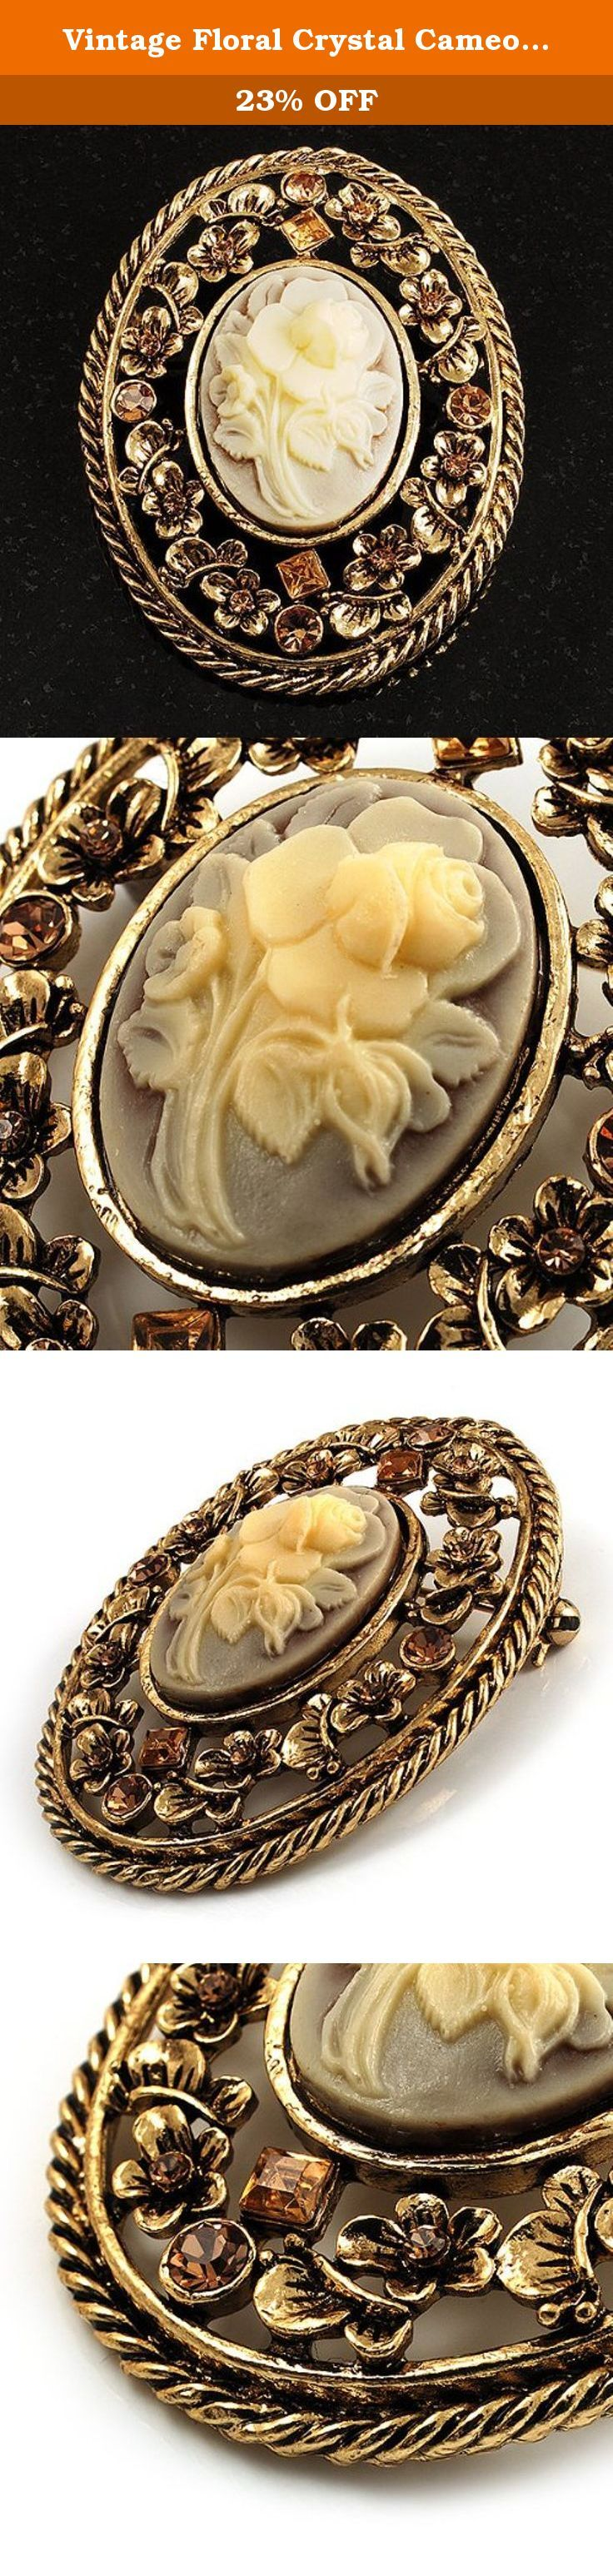 Vintage Floral Crystal Cameo Brooch (Antique Gold Finish). For a classic cameo lover, this Vintage Floral Crystal Cameo Brooch is the ticket. Featuring a romantic rose - shape flower crafted in the oval beige cornelian stone and set in the filigree crystal frame. The brooch made in antique gold finish offering a vintage look. It measures about 6cm x 4.8cm and fastens securely with a metal pin clasp. Cameo jewellery is truly classic and timeless in its appeal, so this stunning pin will make…